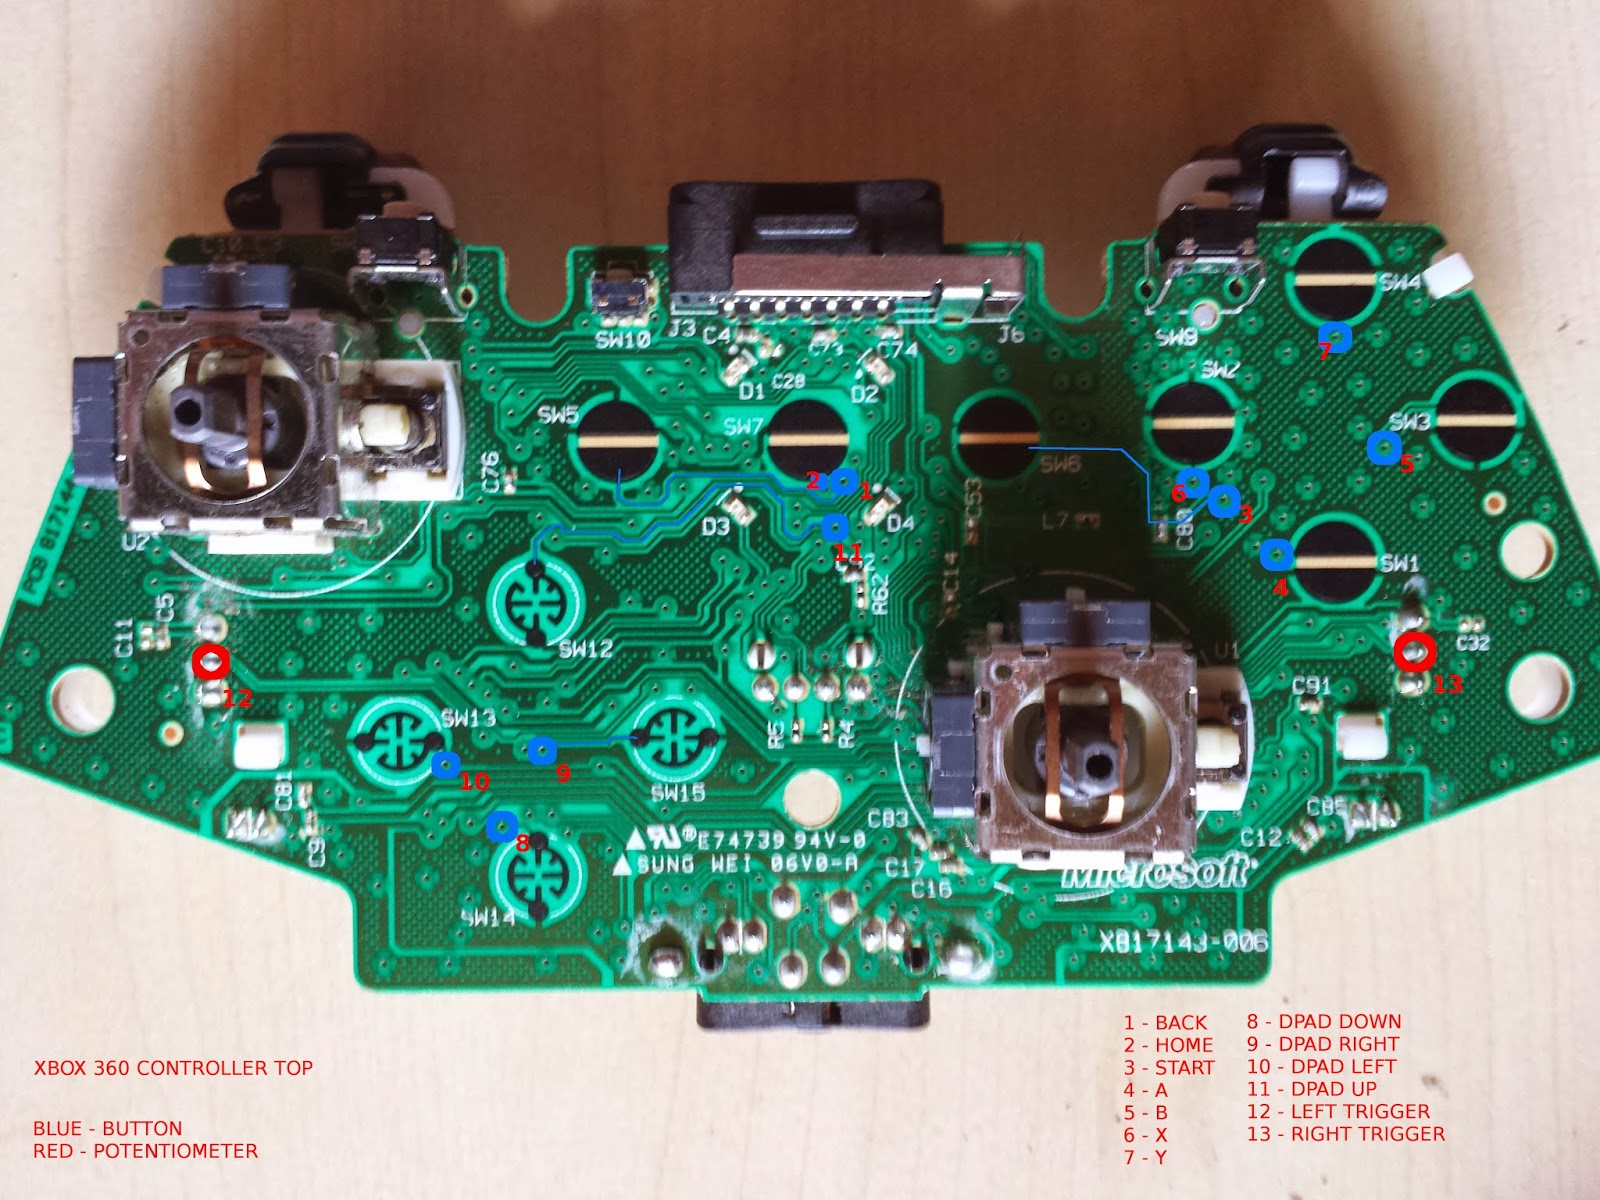 Xbox 360 Controller Wiring - Electrical Drawing Wiring Diagram •